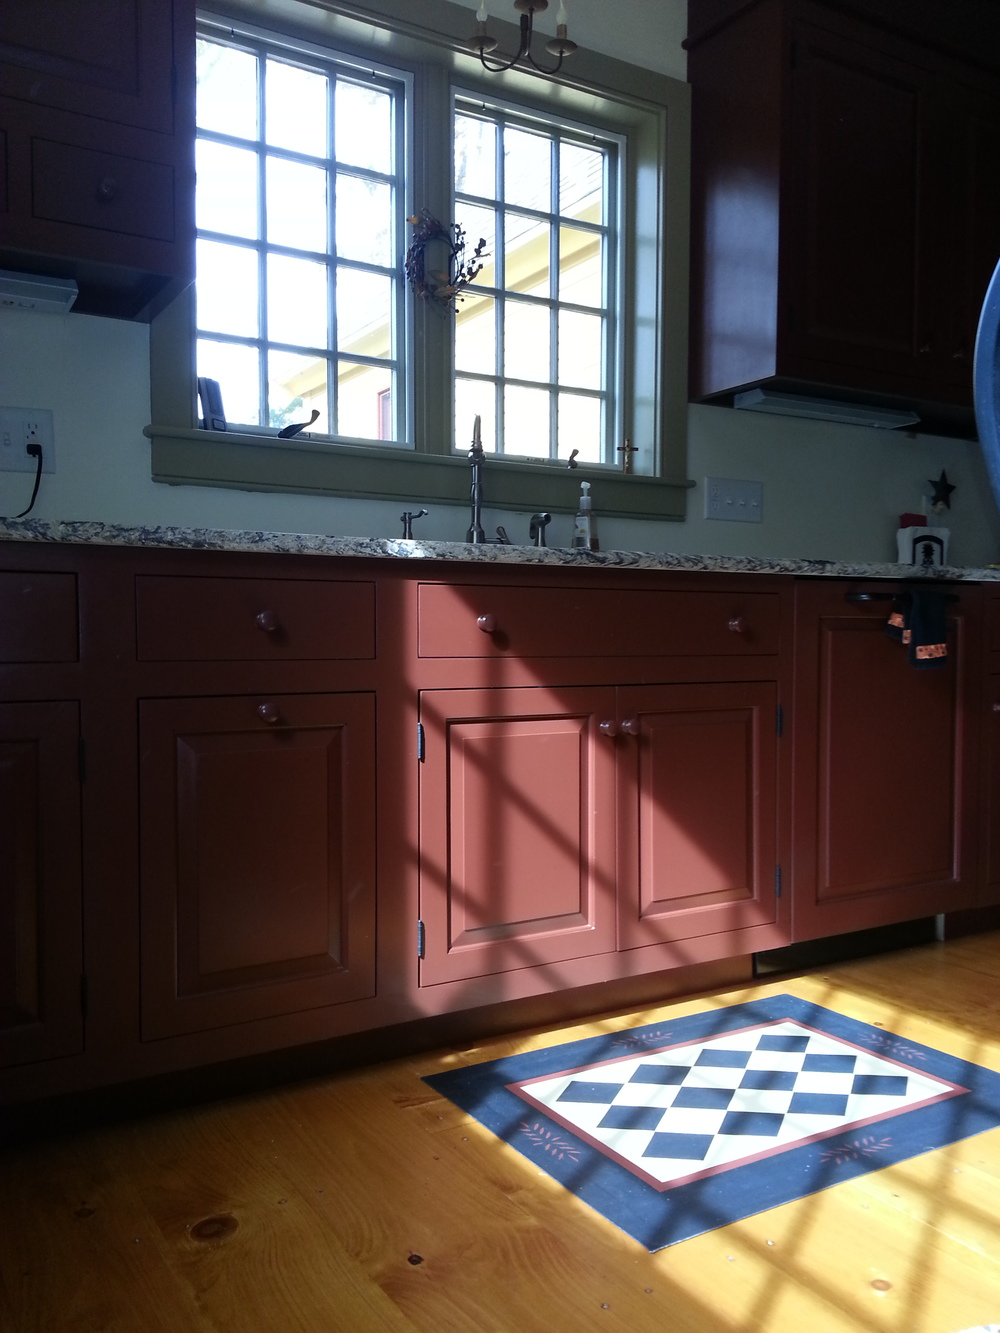 Classic Colonial Homes Interior Kitchen with Floorcloth